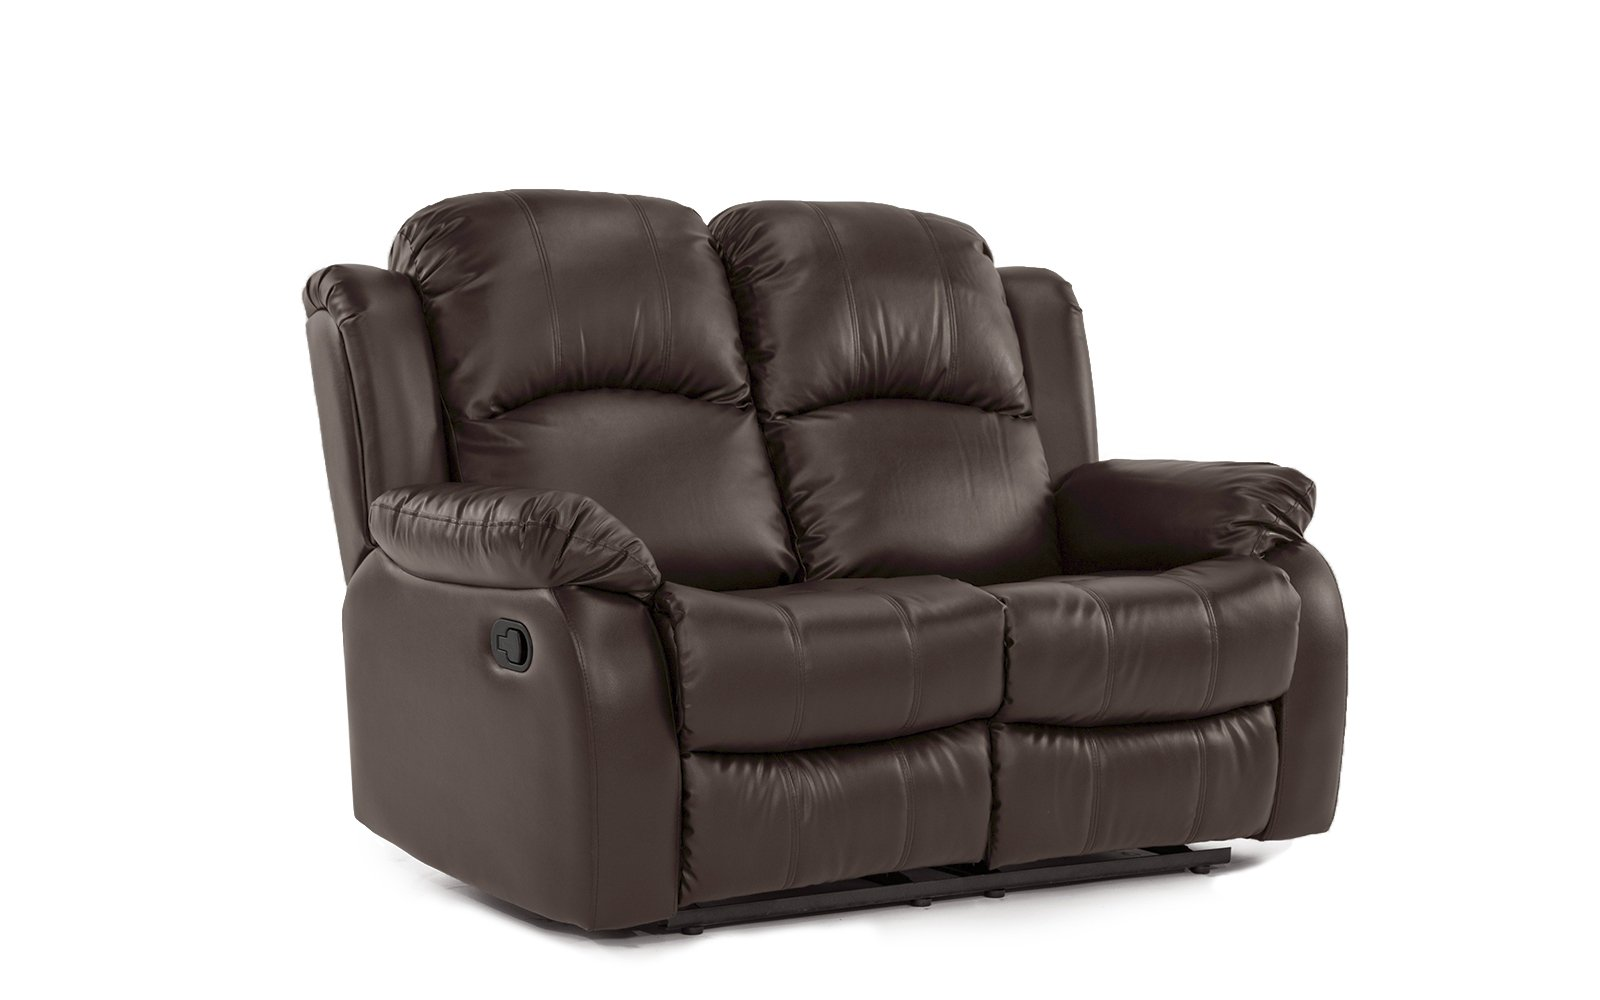 Divano Roma Furniture Classic and Traditional Bonded Leather Recliner Loveseat (2 Seater) by DIVANO ROMA FURNITURE